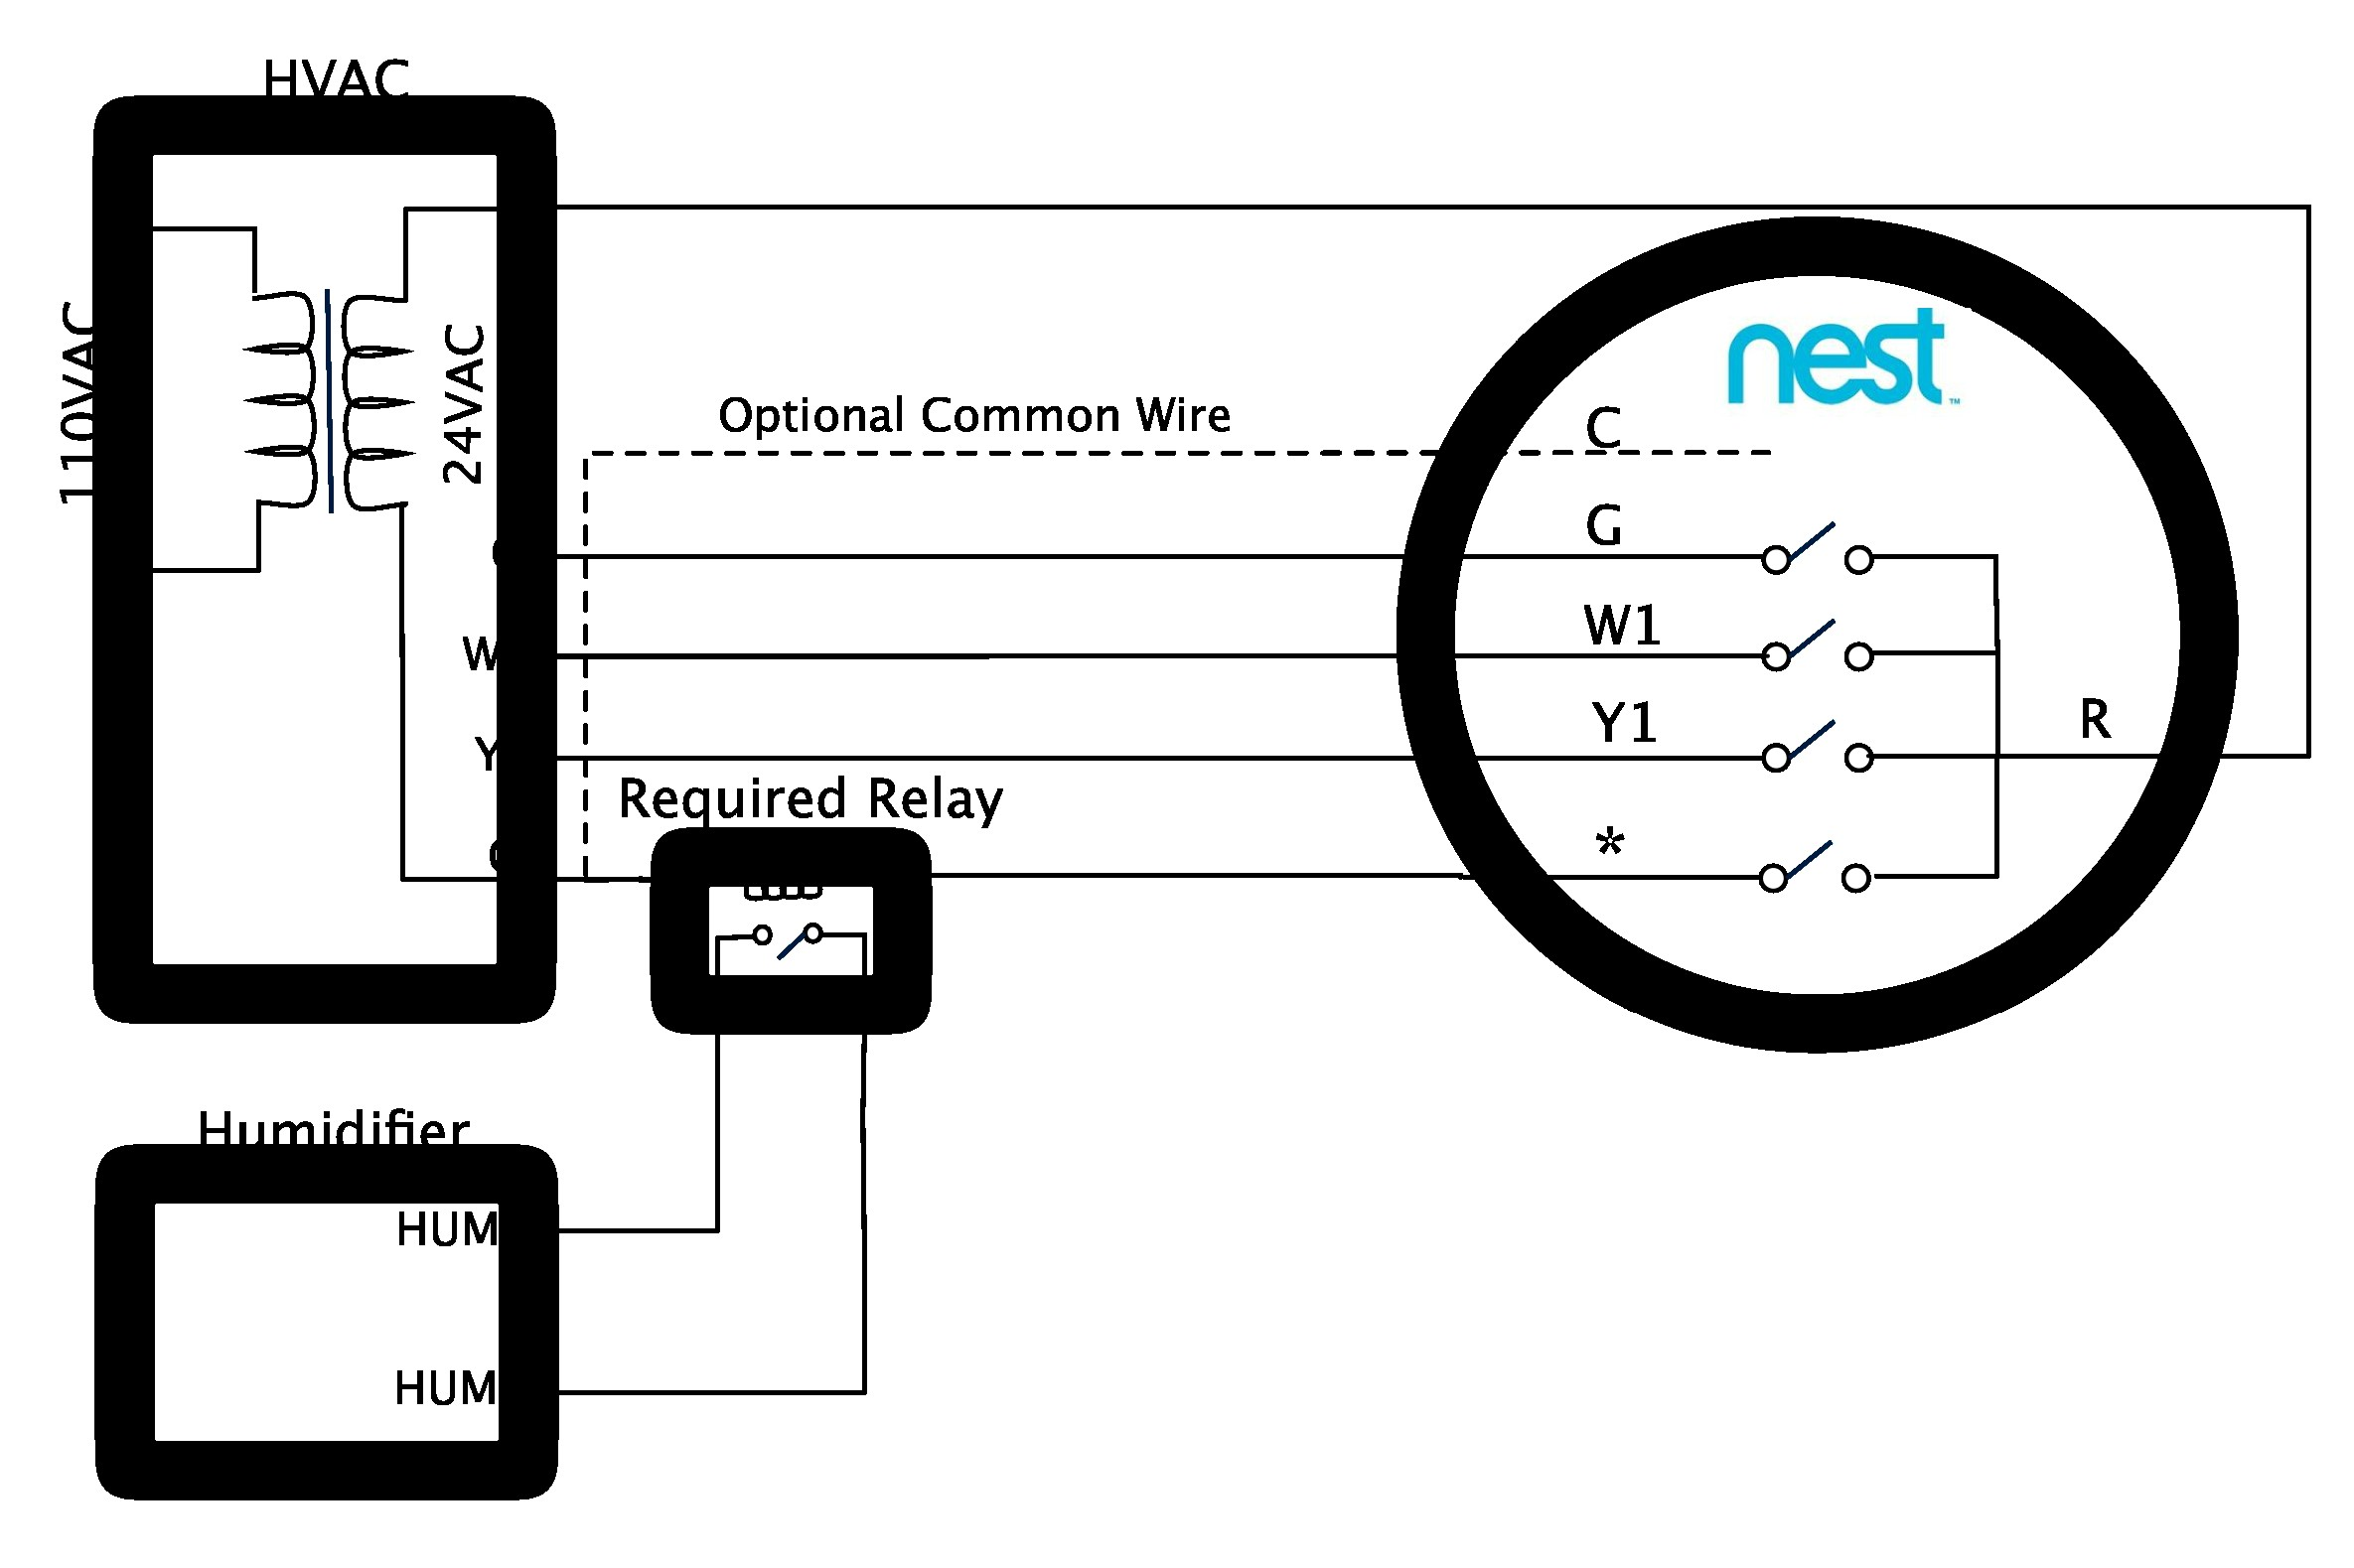 nest 2 and honeywell he300 wiringsupport assets nest image hum 2 wire png